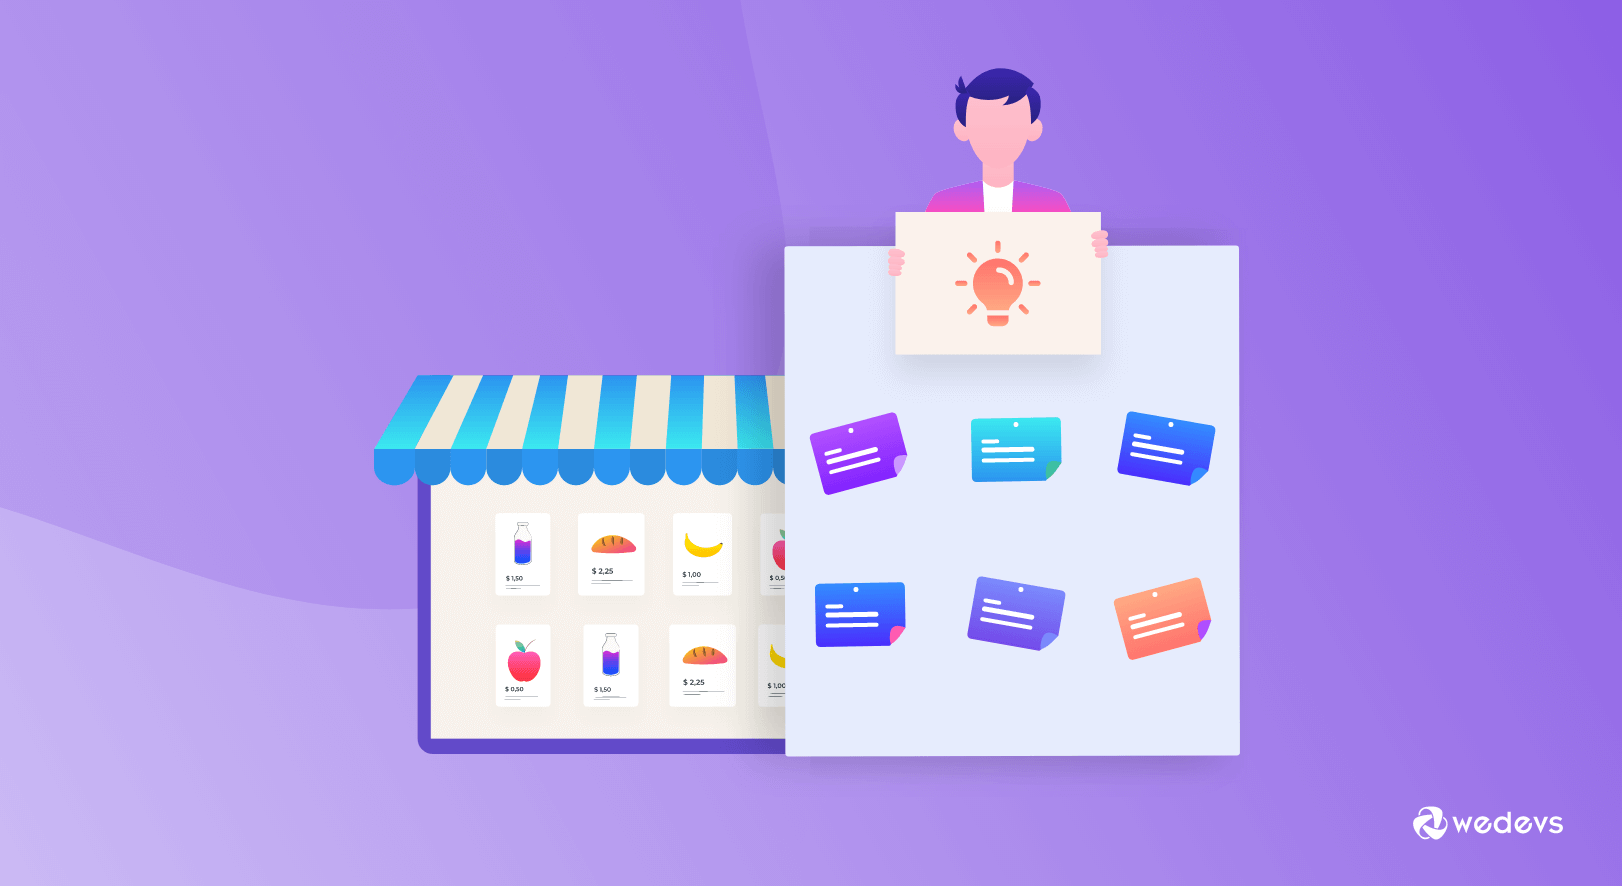 How To Write an Effective eCommerce Business Plan